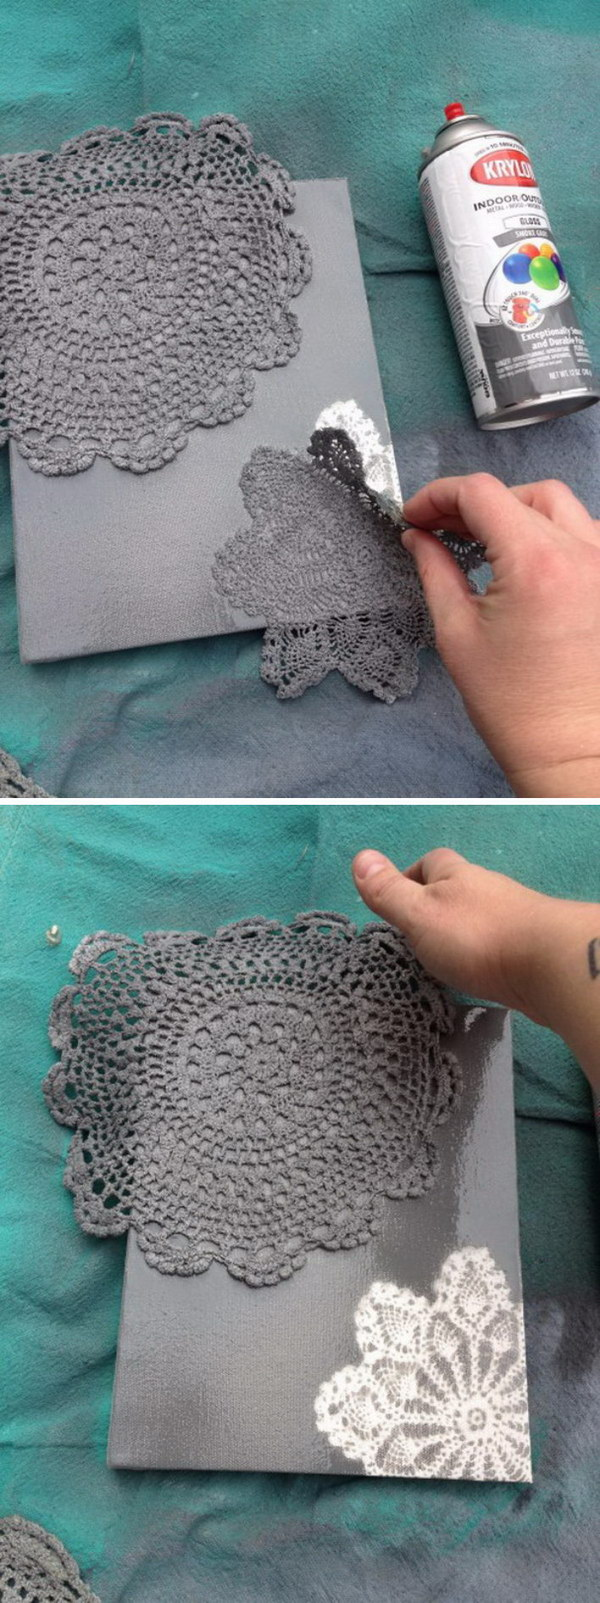 DIY Spray Pintado Doily Canvas.